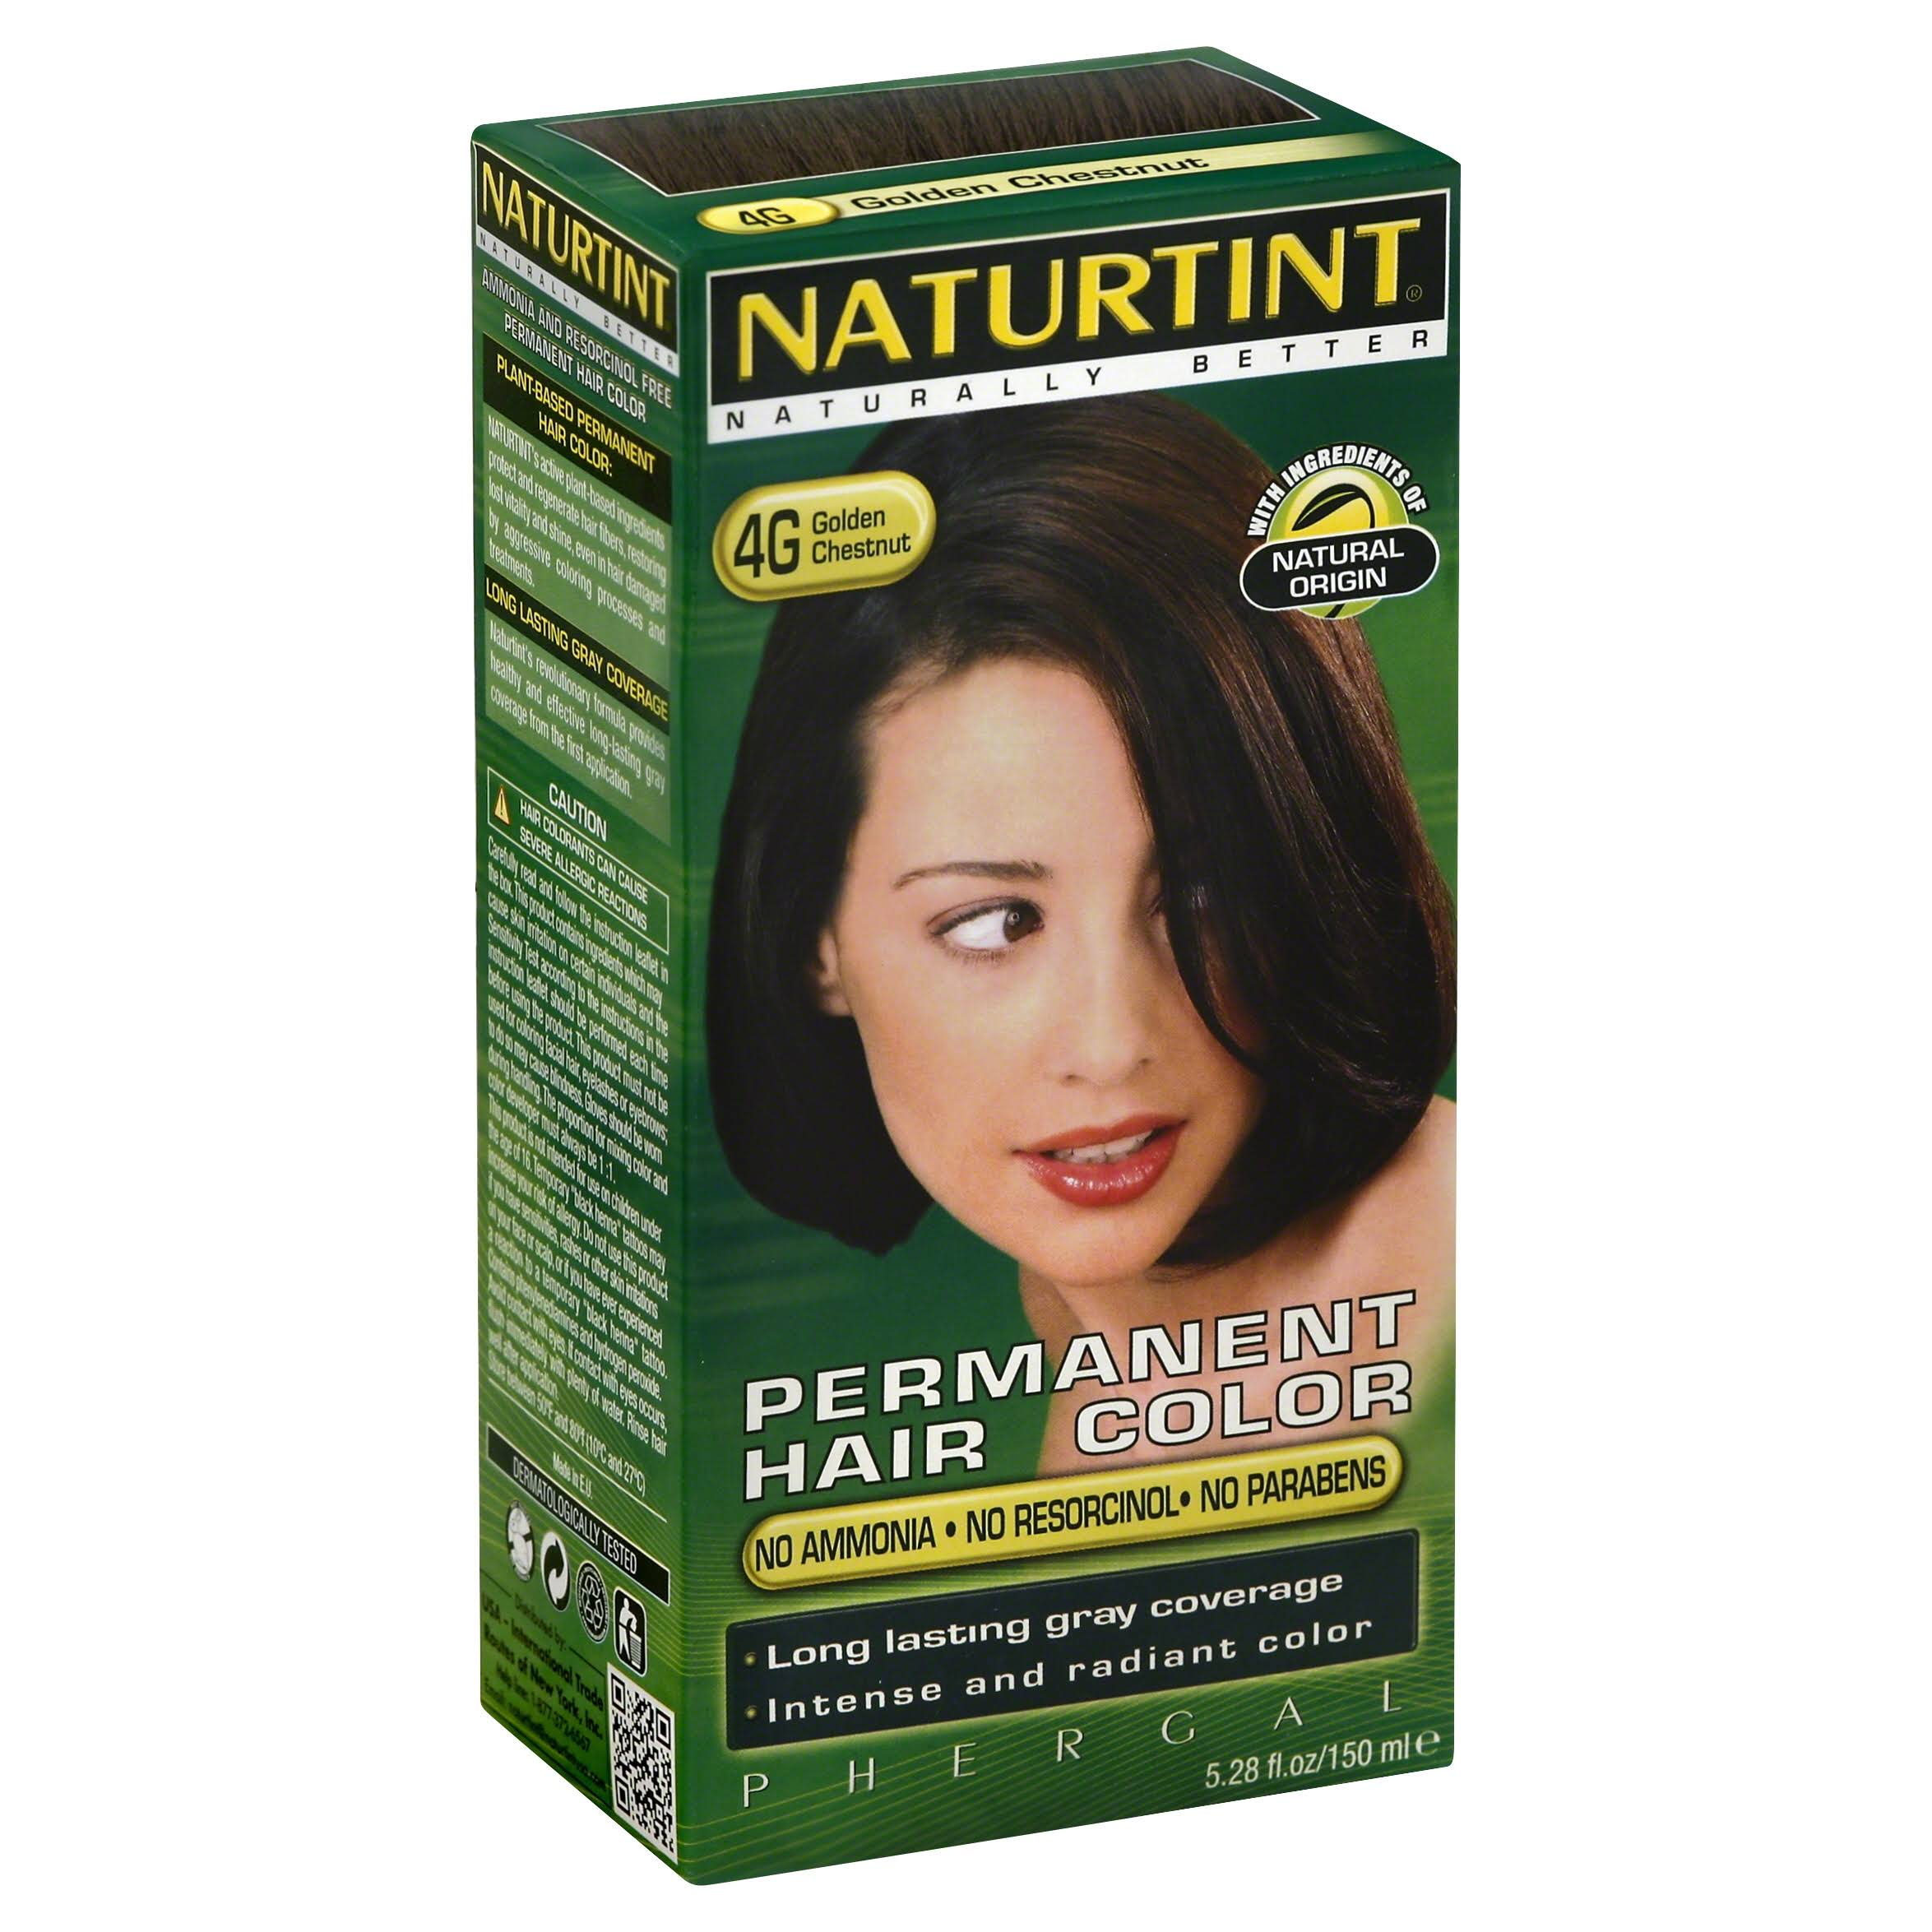 Naturtint Permanent Hair Colour - 4G Golden Chestnut, 150ml